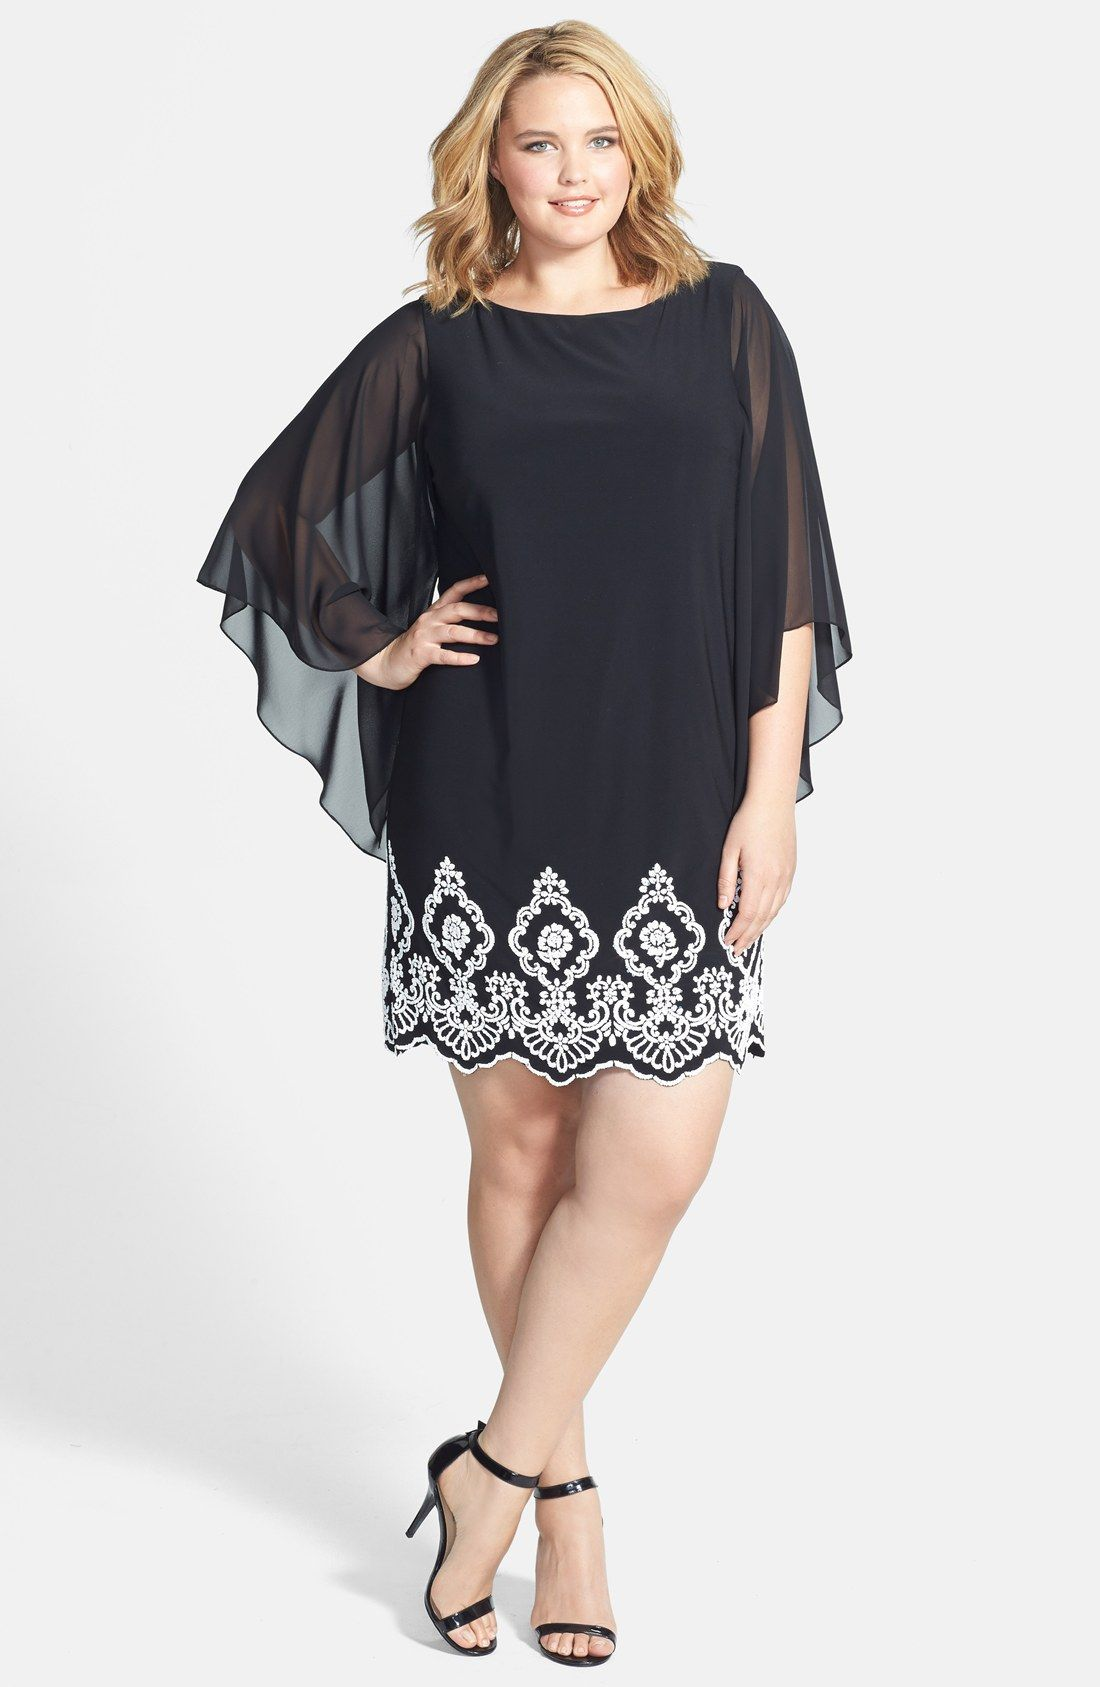 Discover this seasonus covetable plus size dresses in the latest